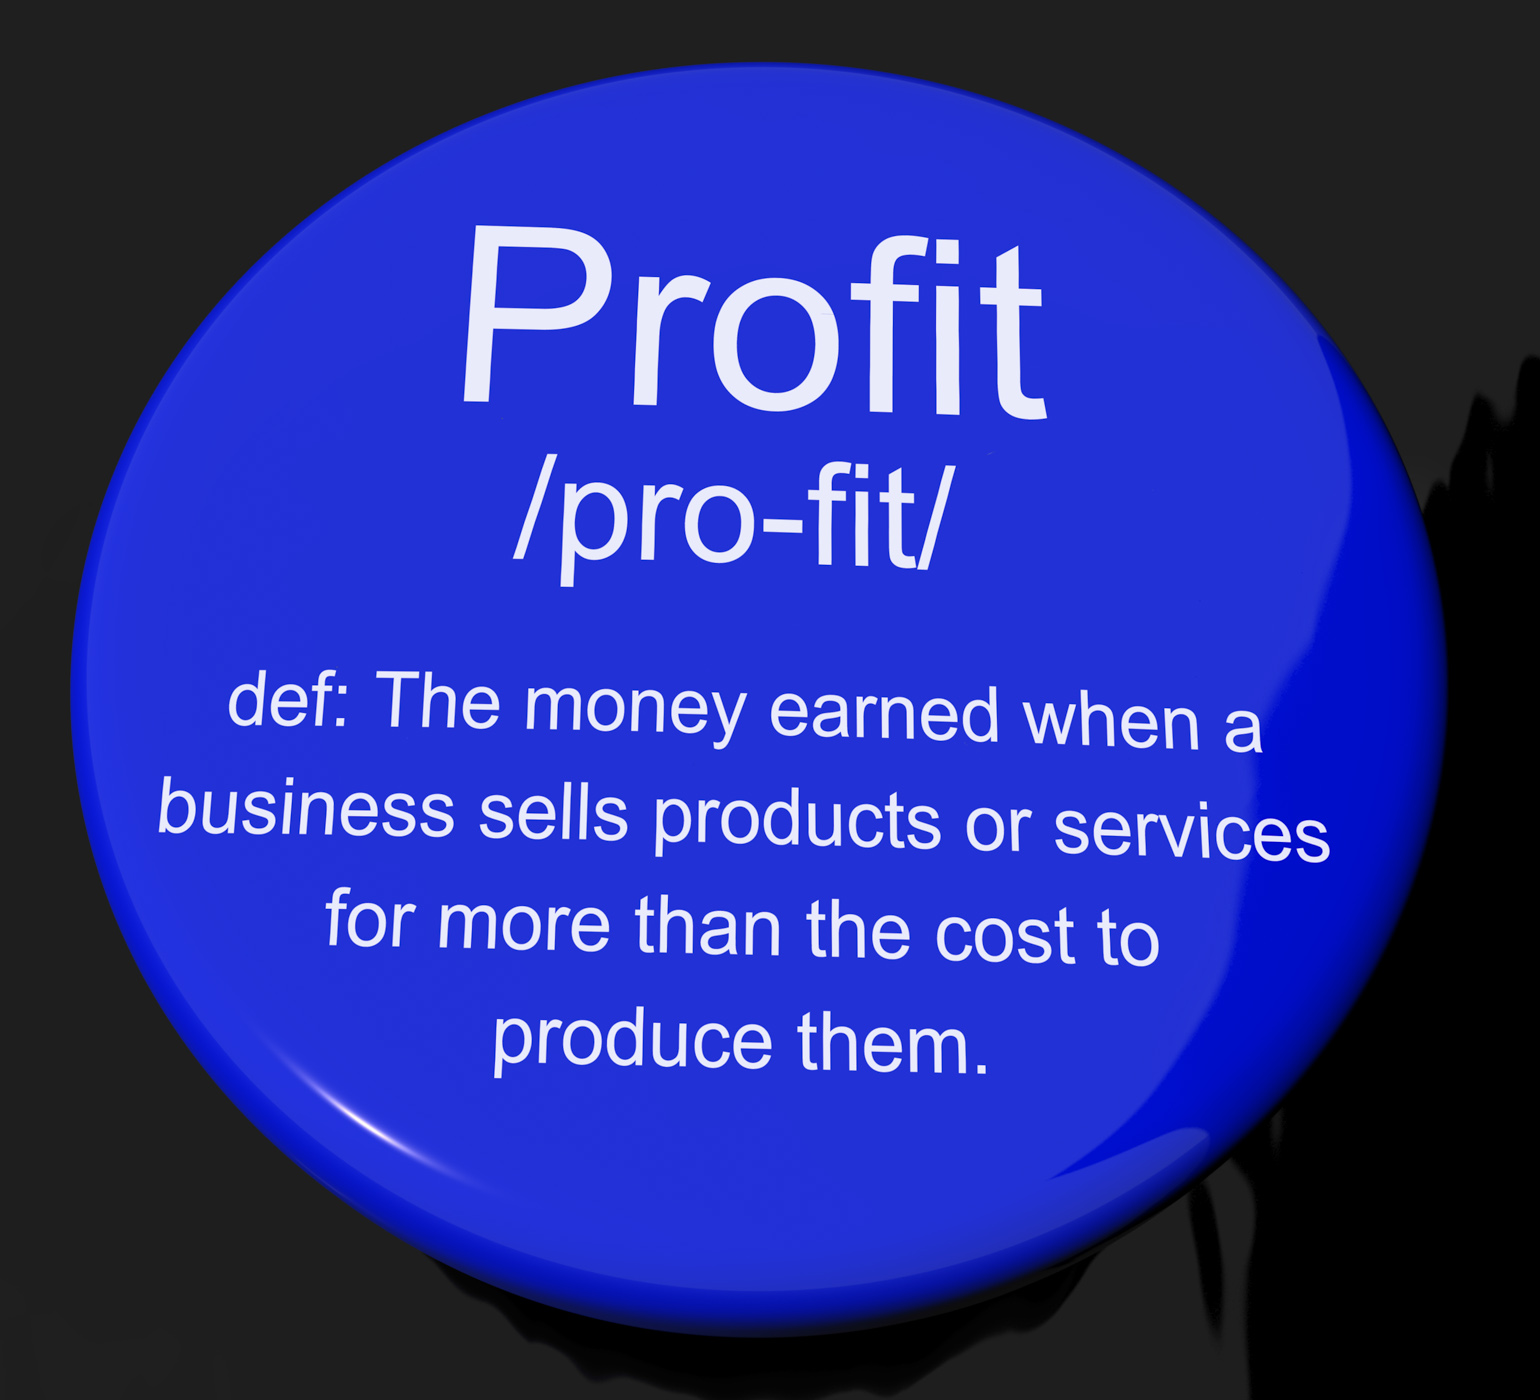 Profit definition button showing income earned from business photo